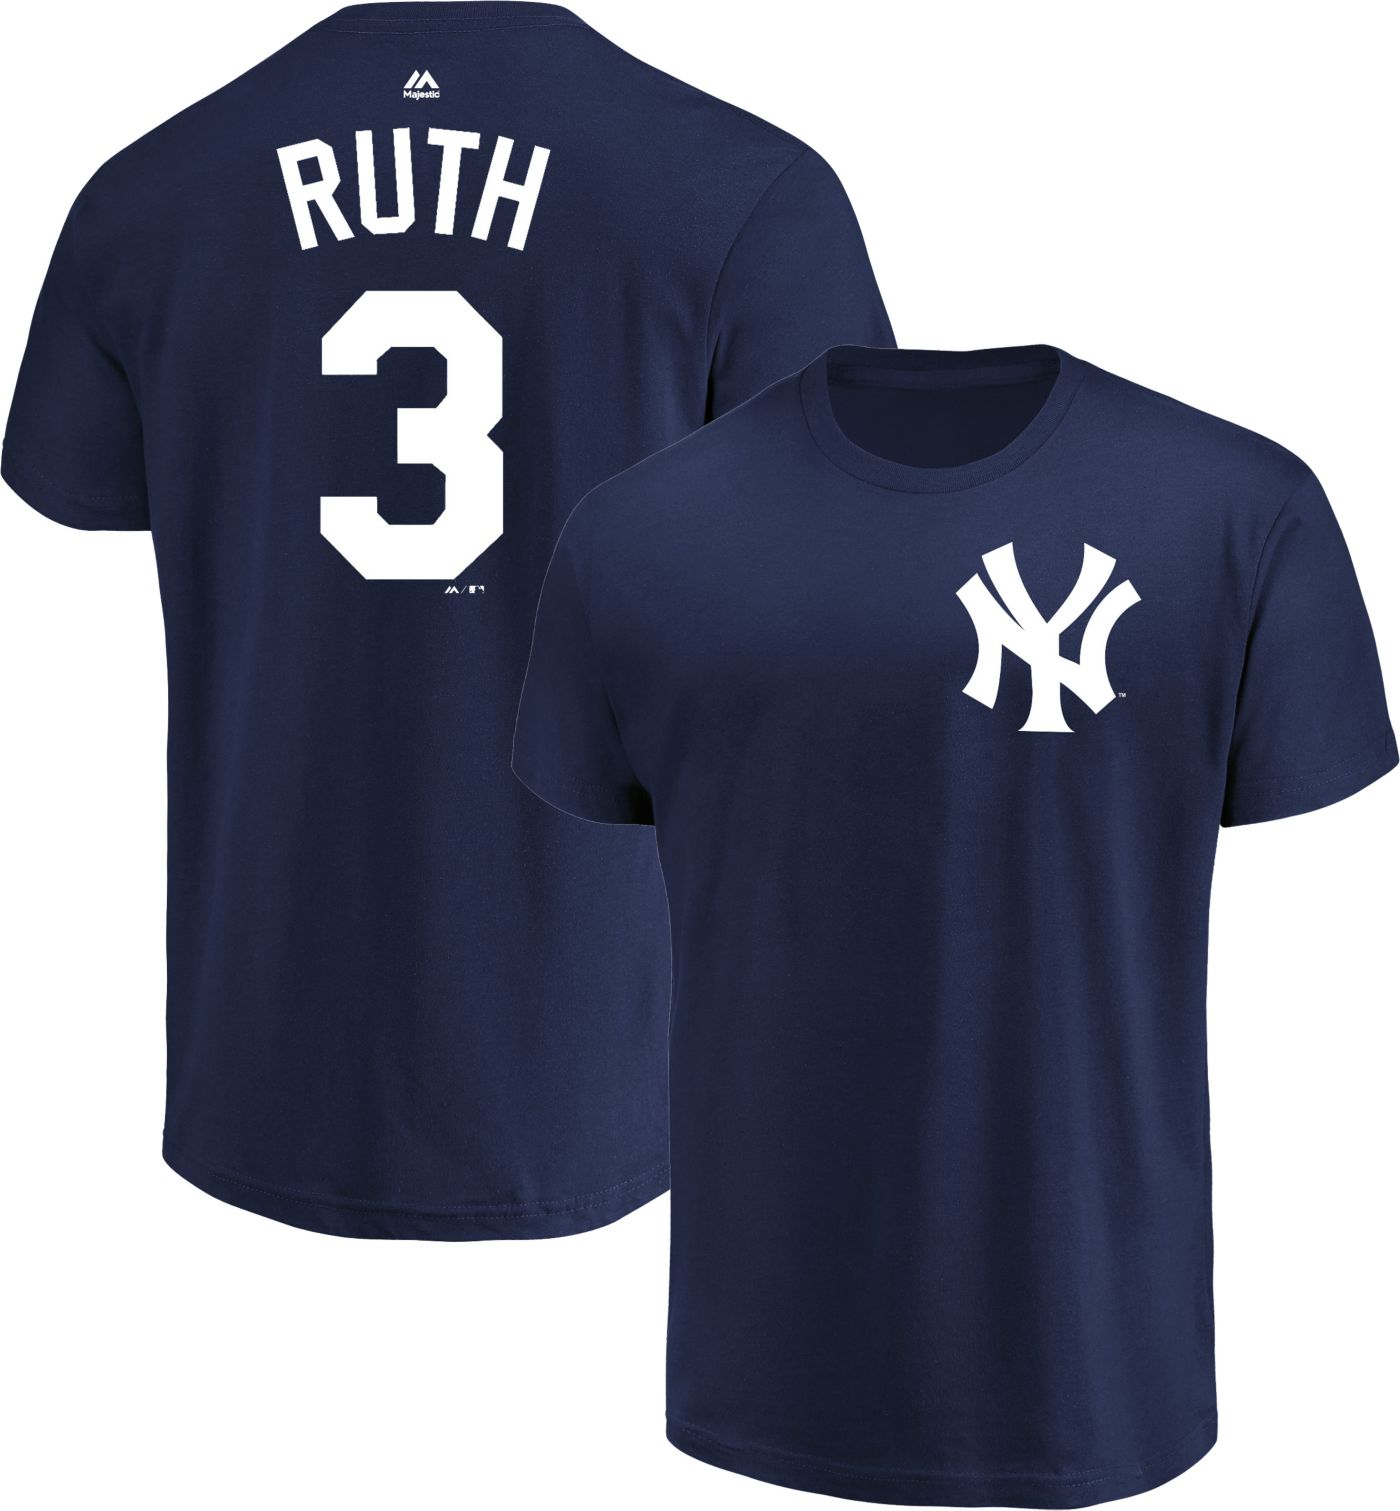 Majestic Men's New York Yankees Babe Ruth #3 Navy Cooperstown T-Shirt